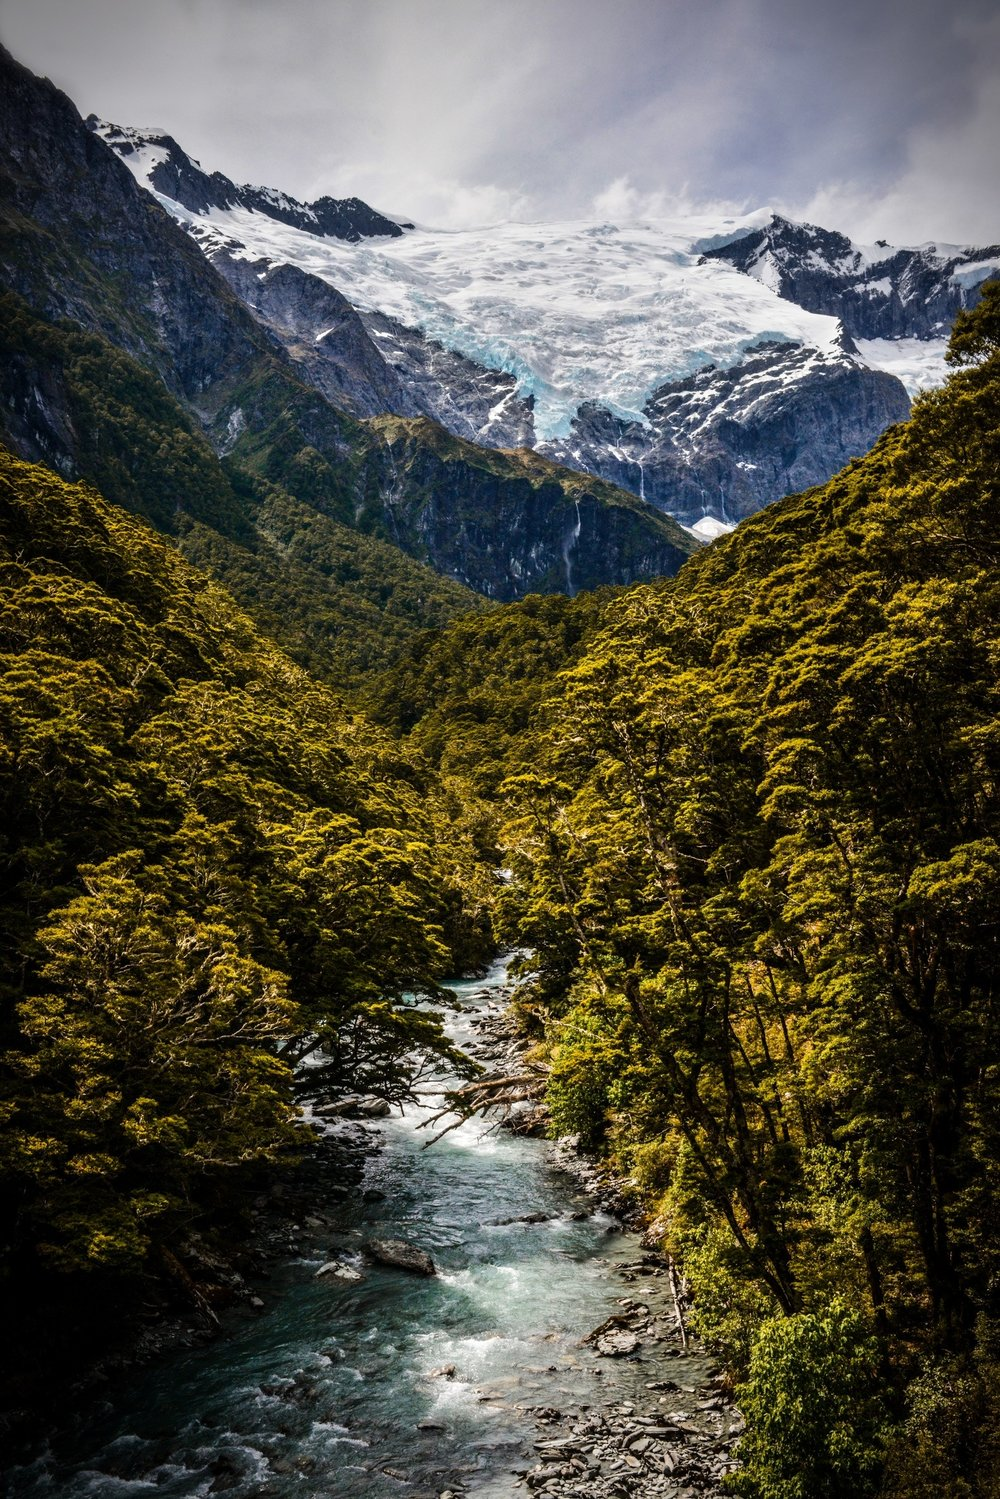 Photo of Mount Aspiring in New Zealand. By  Will Turner  on  Unsplash .